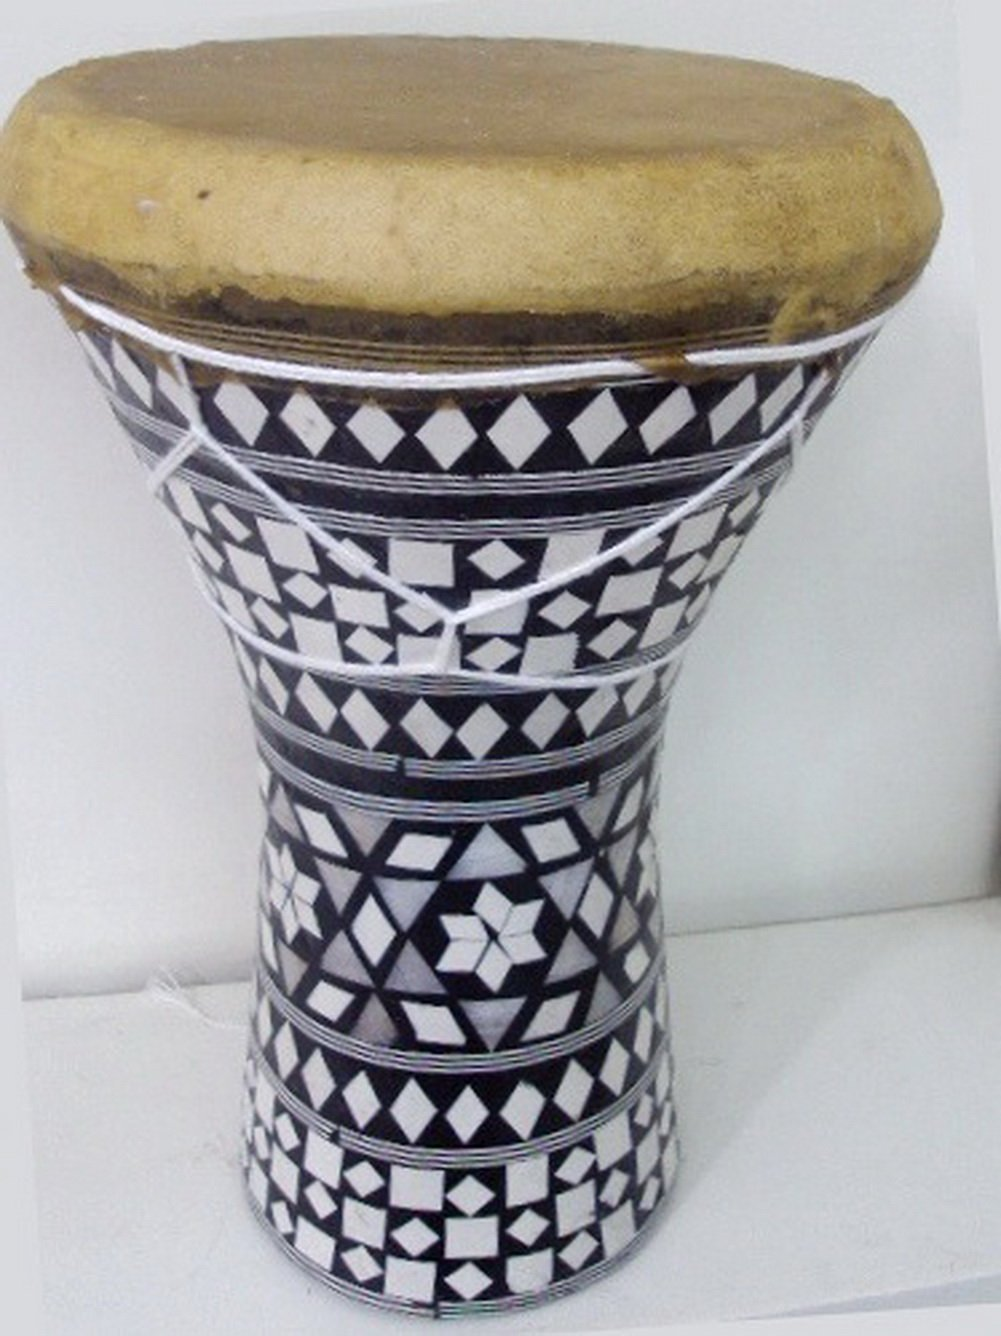 1PCS Large Egyptian Wooden Tabla Drum Doumbek Goat Skin Inlaid Handmade 11'' by Bethlehem Gifts TM by Bethlehem Gifts TM